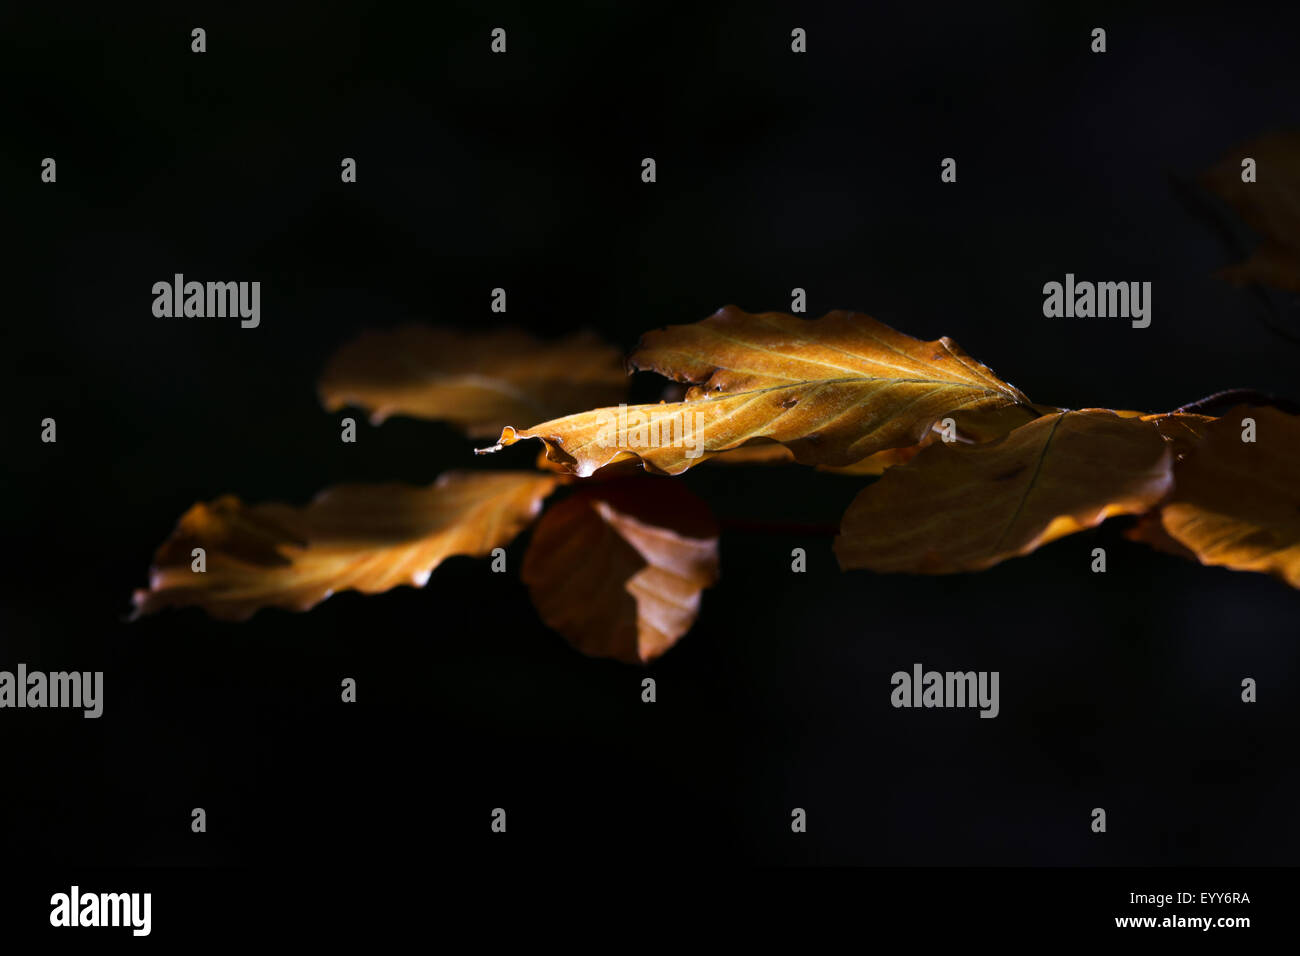 Beech leaves - Stock Image